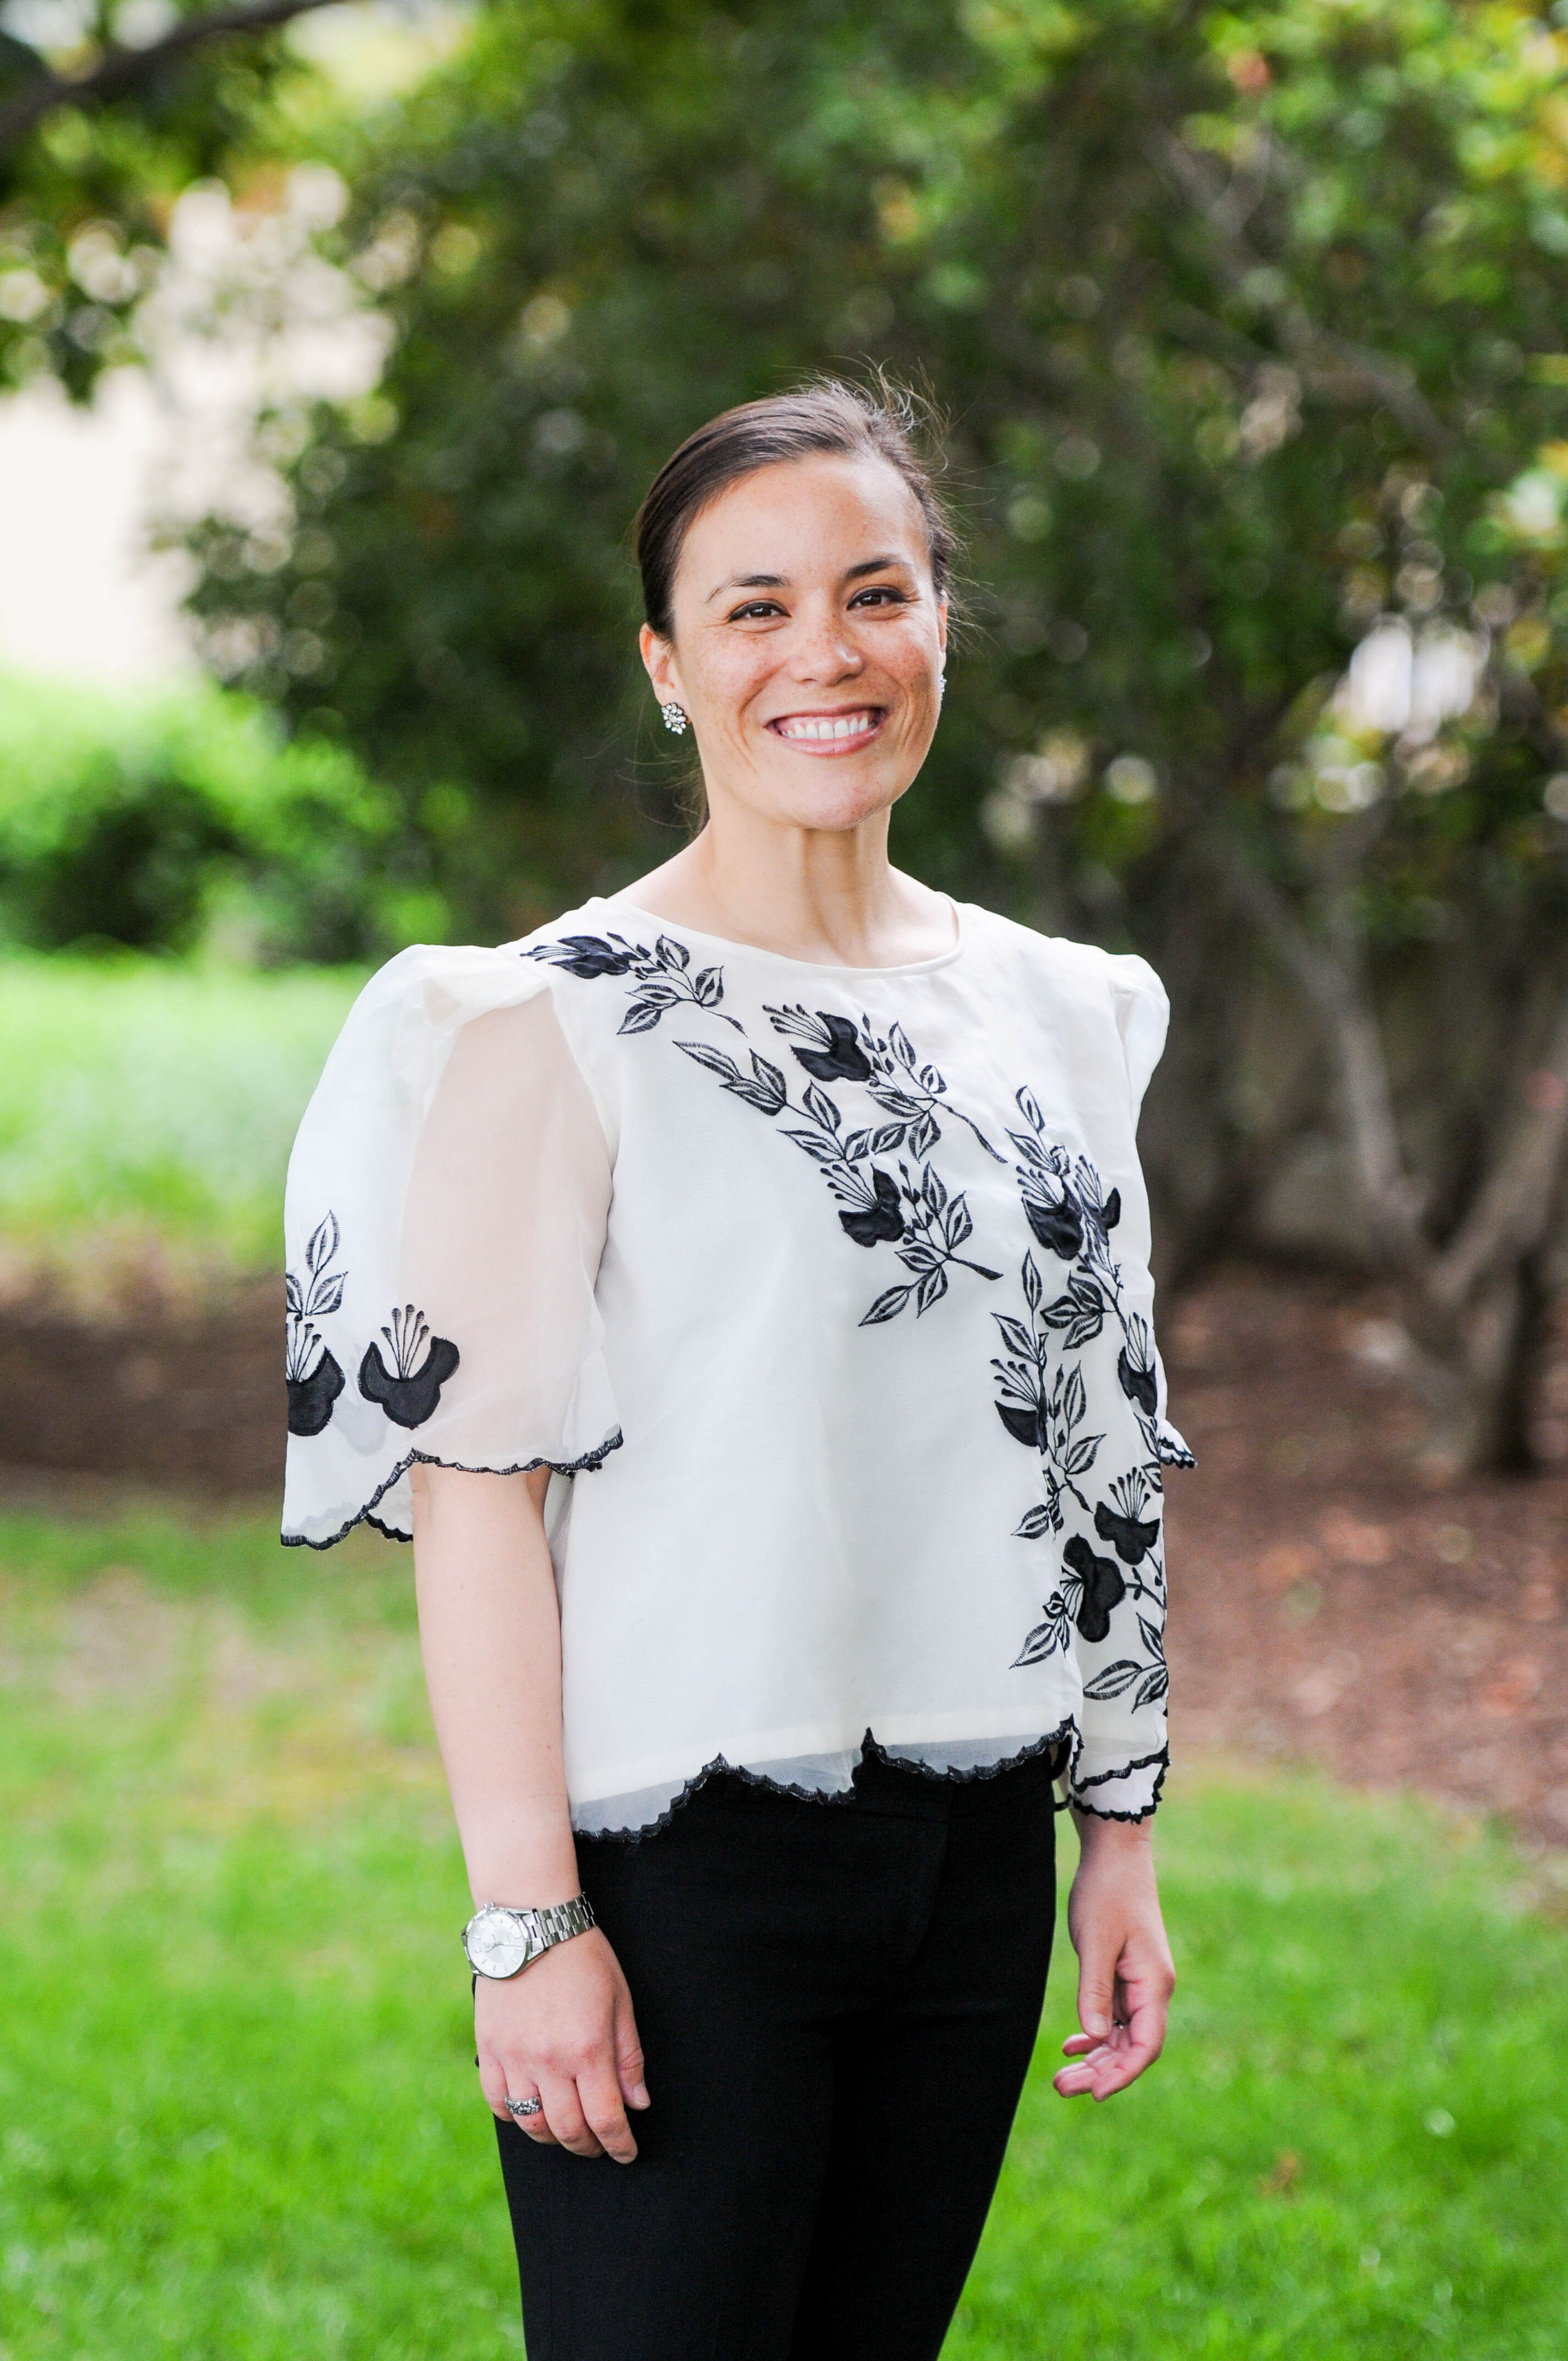 Gina Ortiz Jones hopes to make history as the first lesbian, Iraq War veteran and first-generation Filipina-American to hold a U.S. House seat in Texas. Photo Credit:  Gina Ortiz Jones